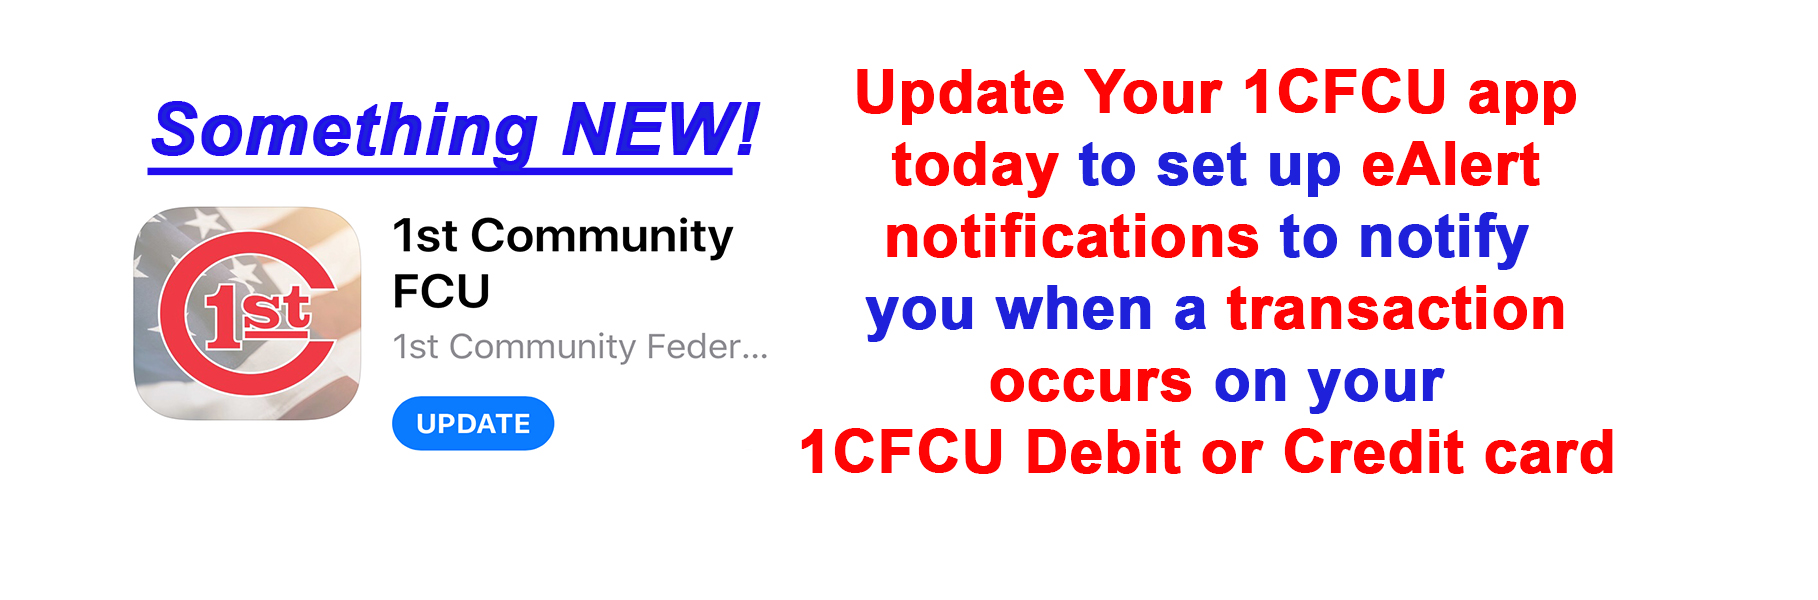 Update our app to receive eAlerts on debit or credit card transactions